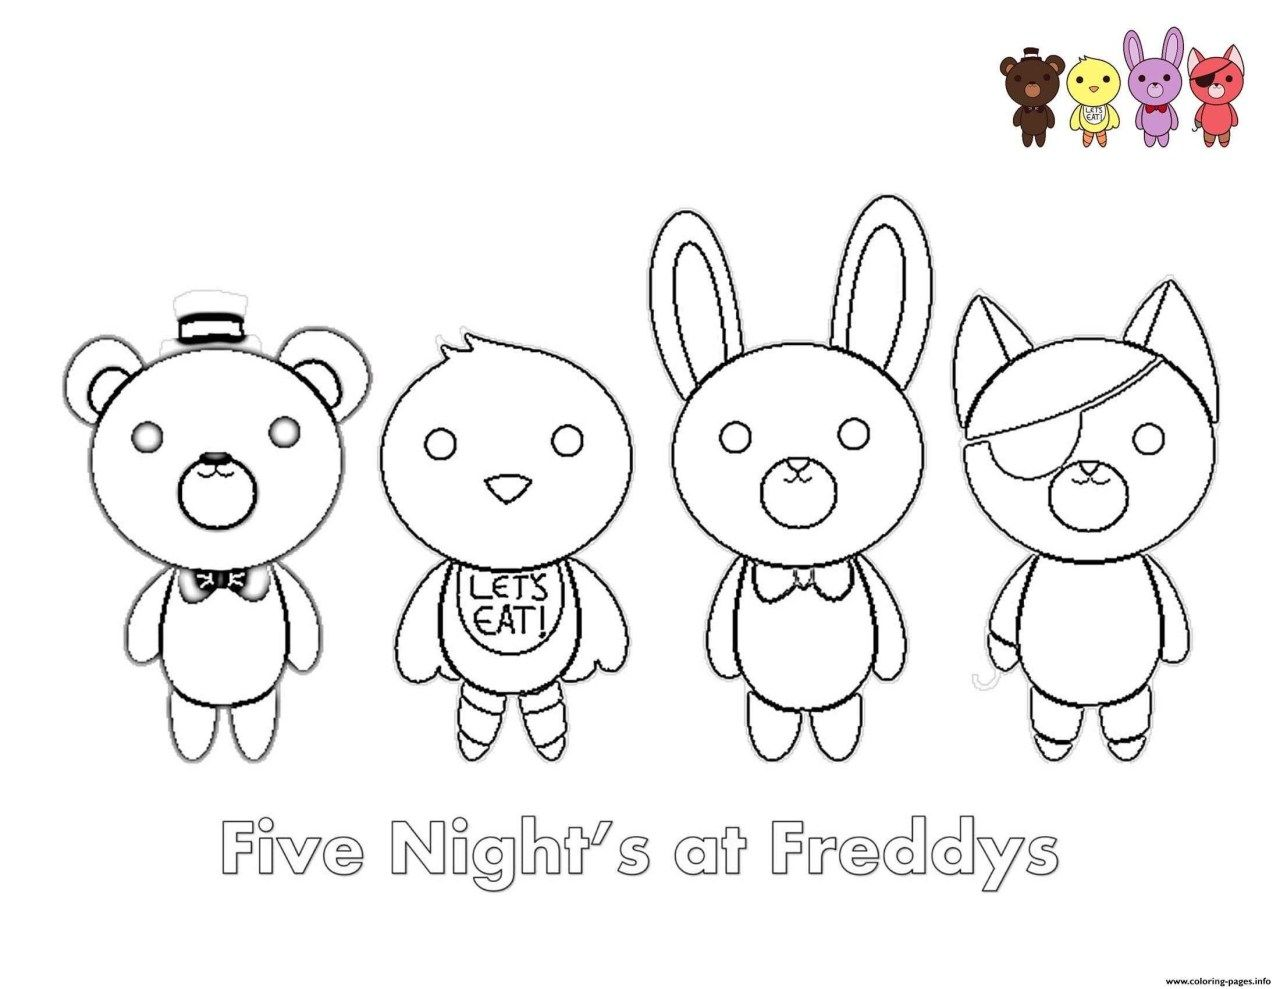 Five Nights At Freddy S Coloring Pages Fnaf Coloring Pages Bonnie Luxury How To Draw Bonnie The Bunny Five Entitlementtrap Com Fnaf Coloring Pages Coloring Pages Cartoon Coloring Pages